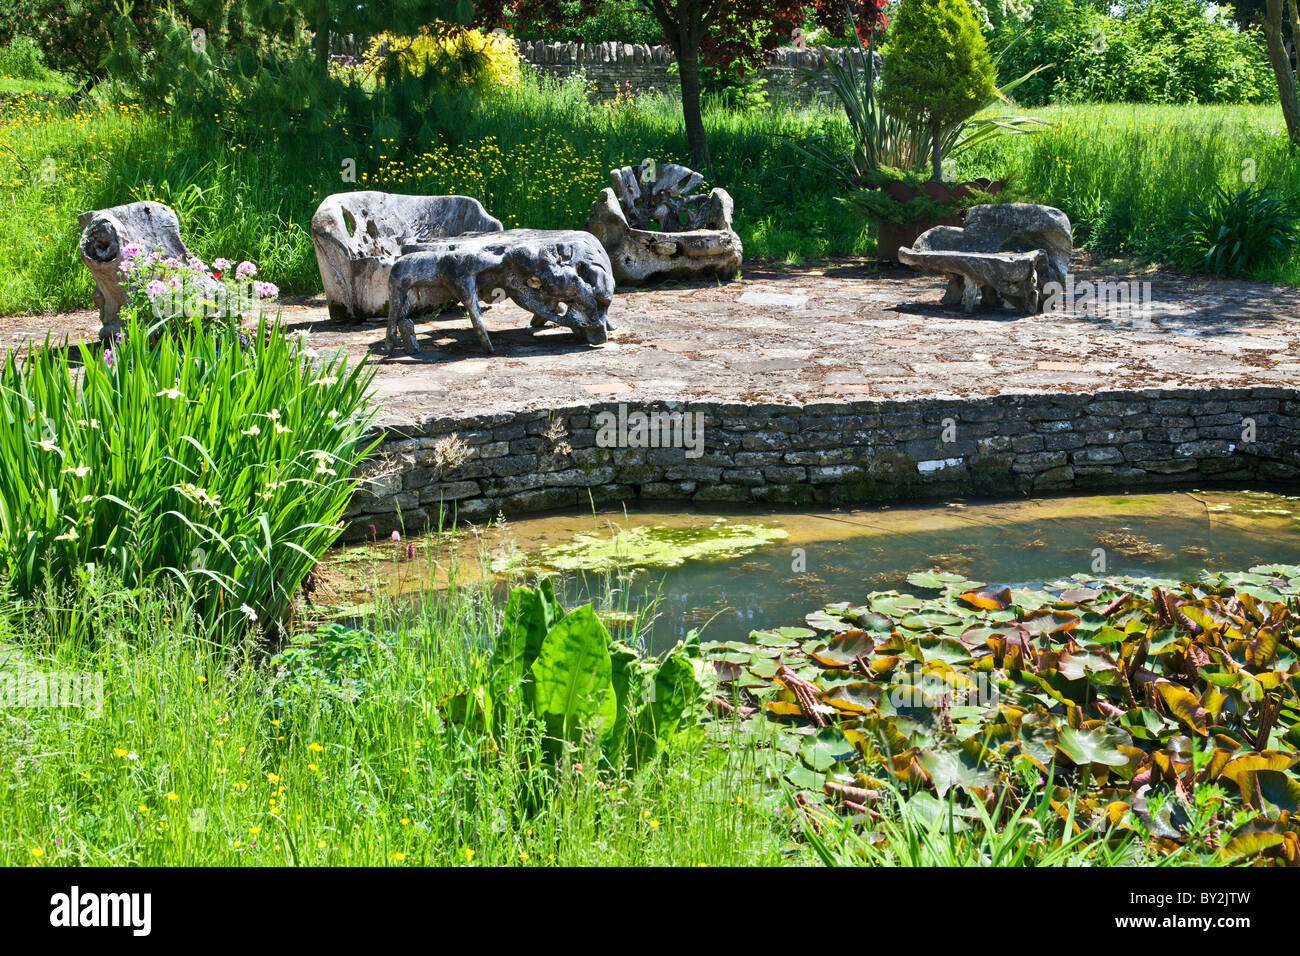 unusual outdoor furniture lawn an unusual set of wooden garden furniture made out driftwood on terrace by pond in an english country summer